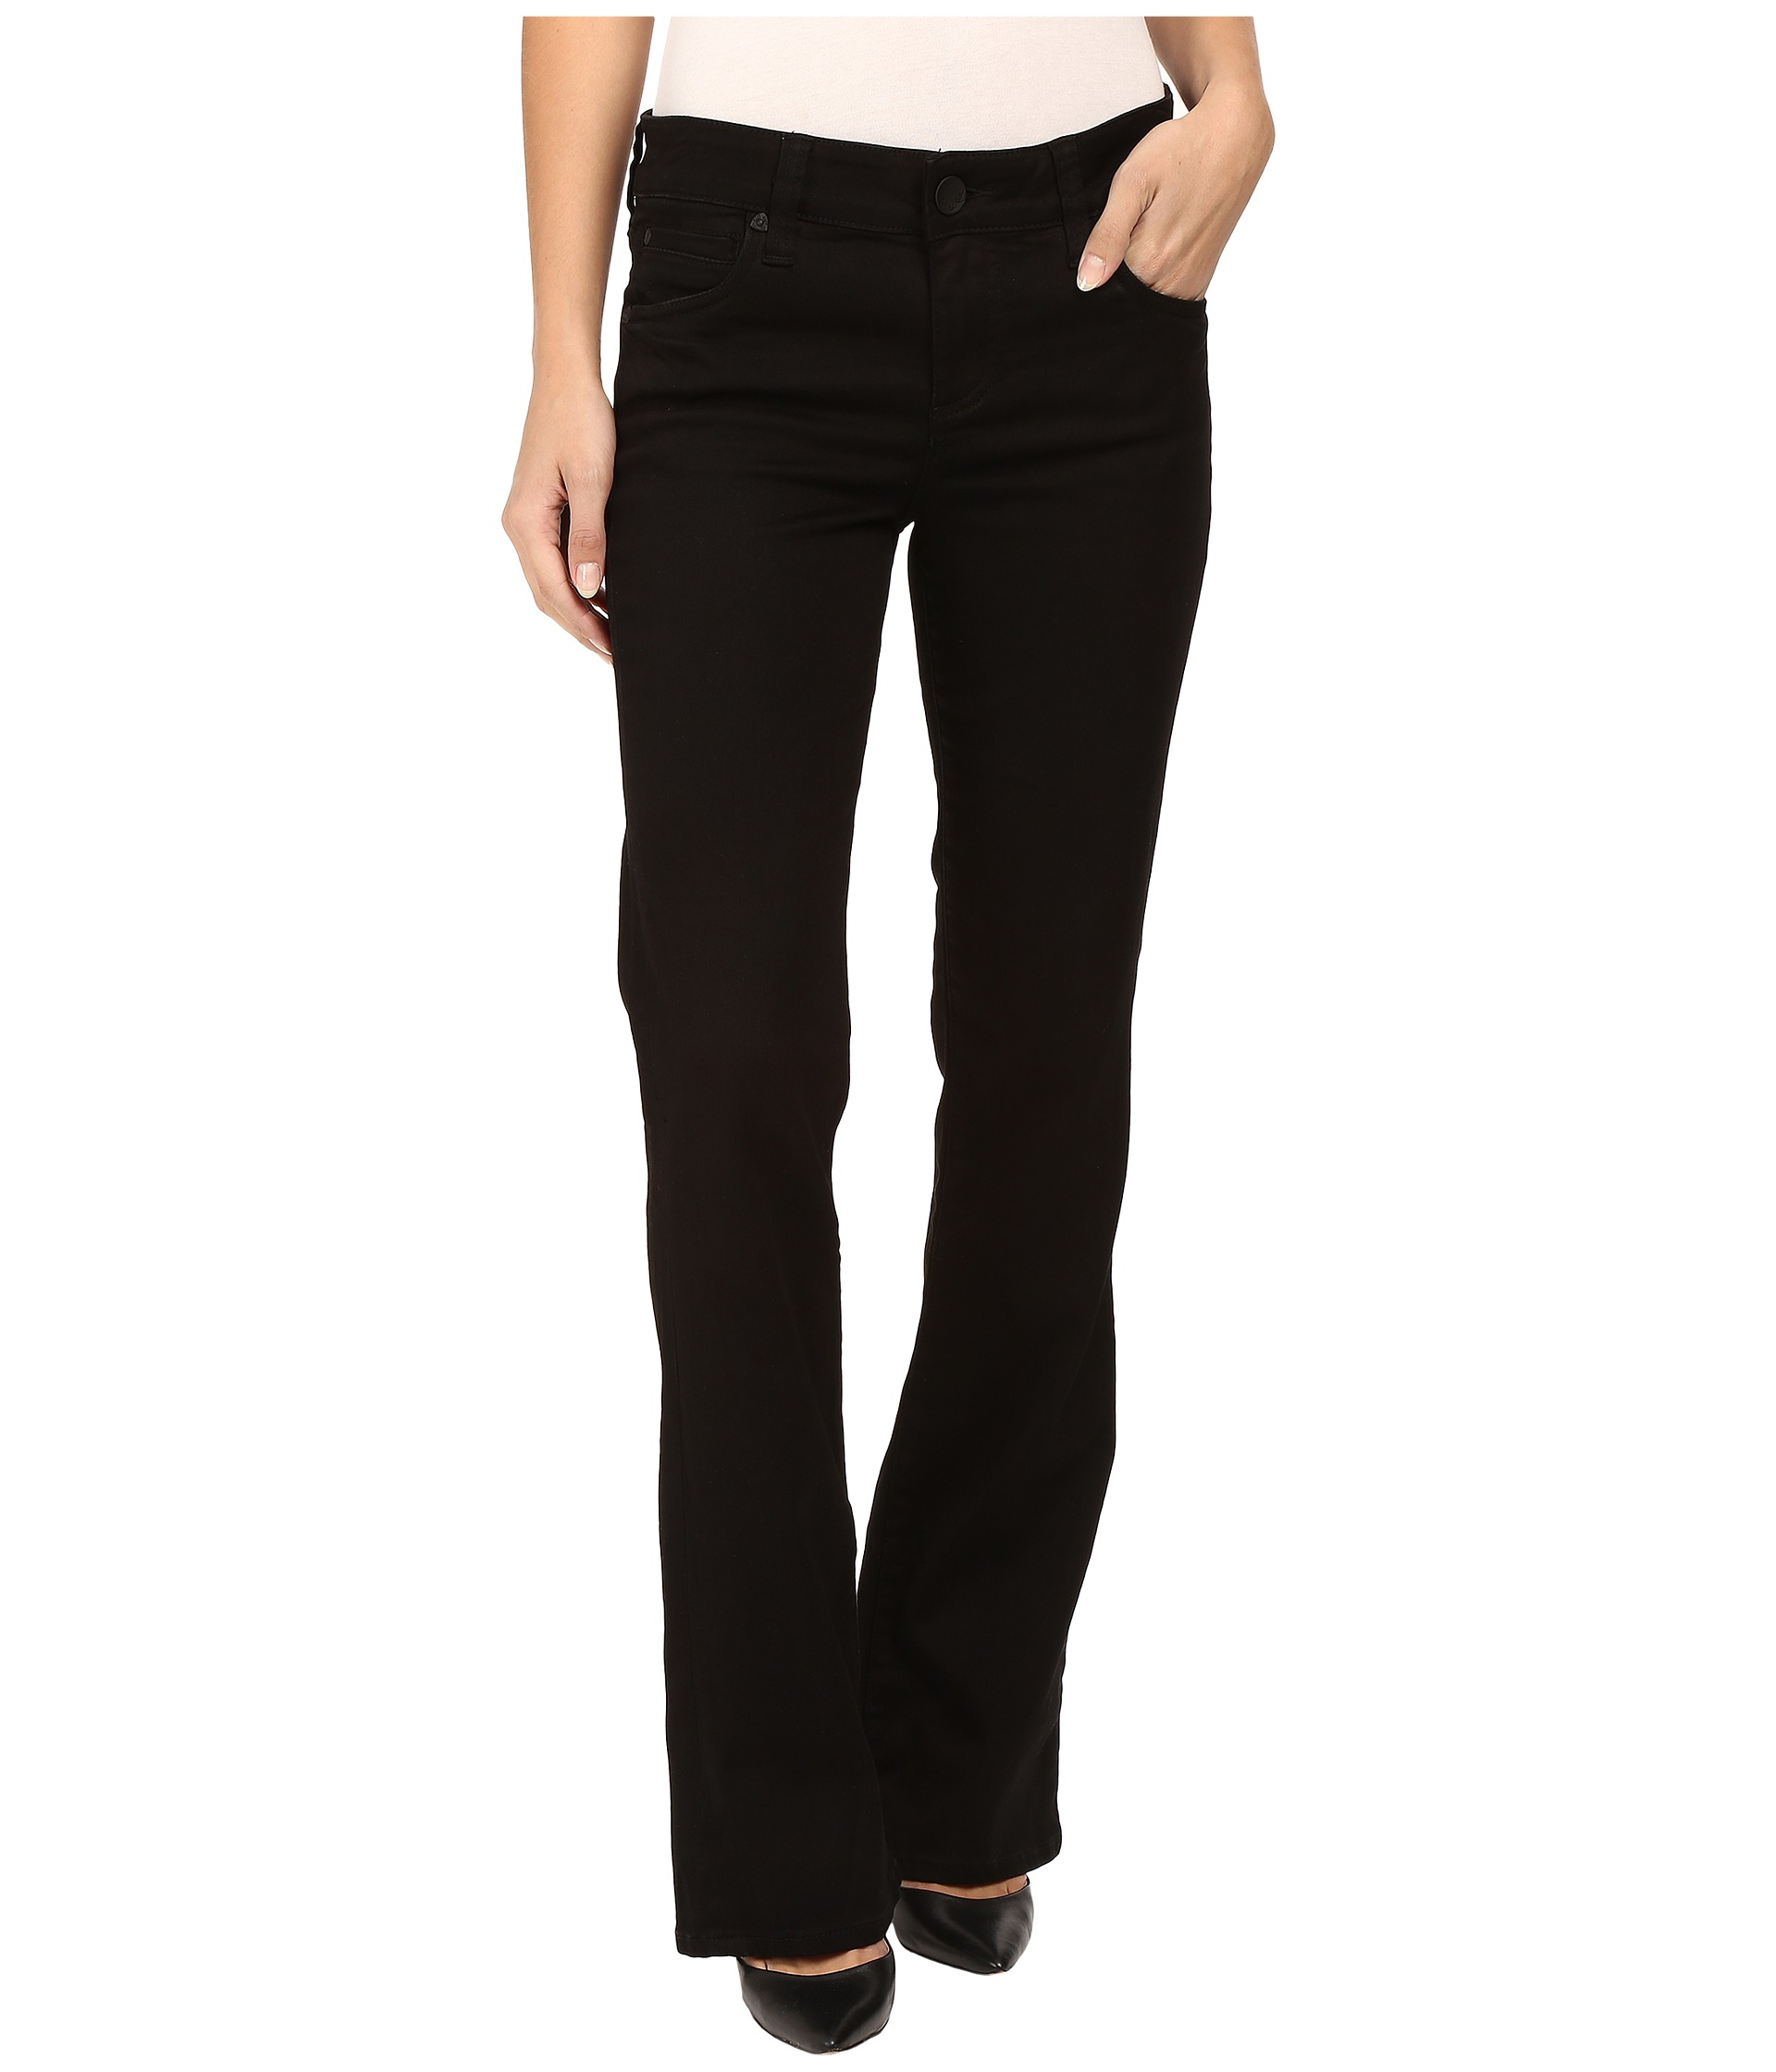 Jeans, Black, Women, Boot Cut | Shipped Free at Zappos